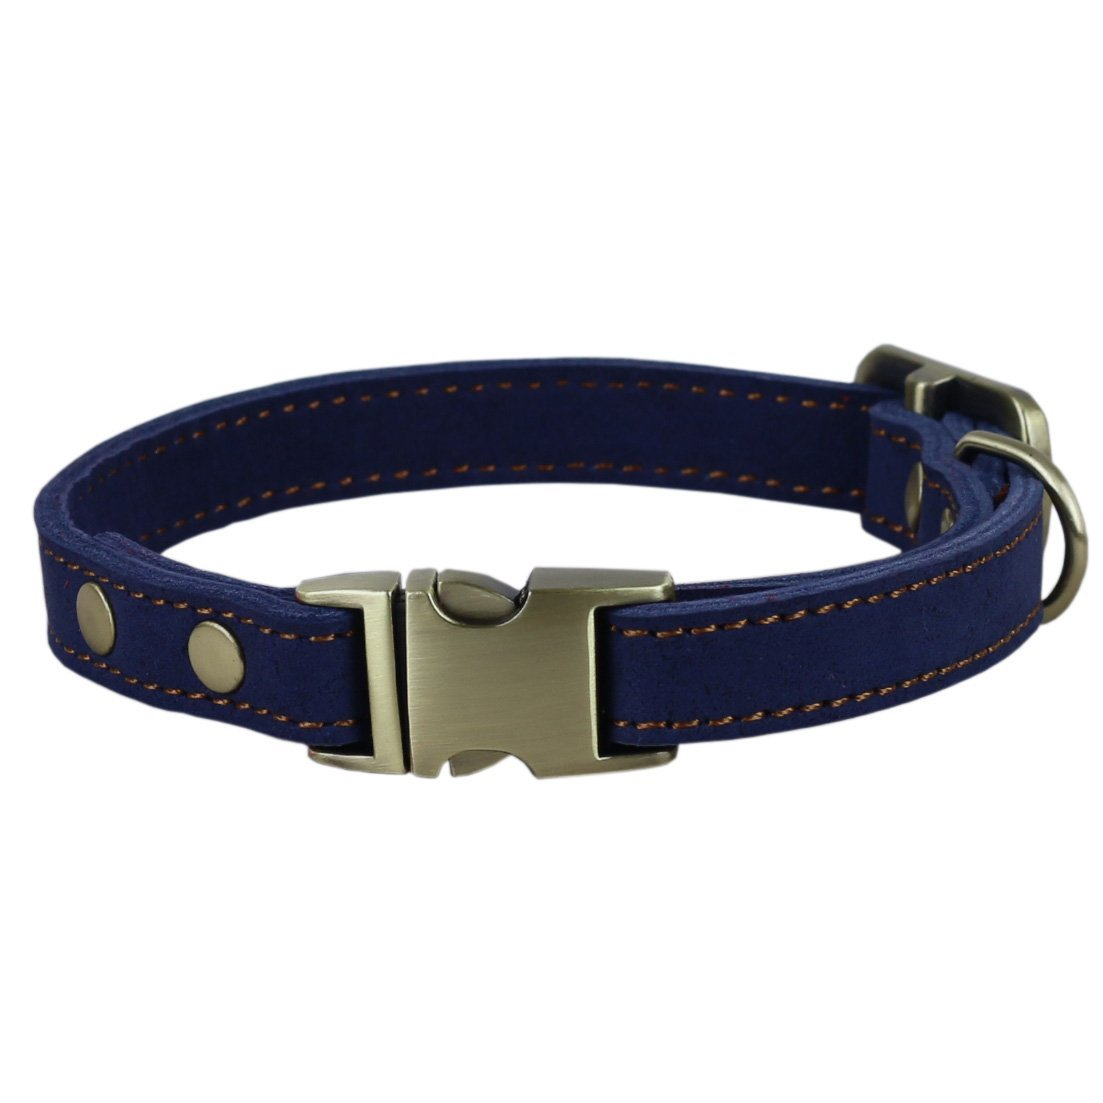 bluee Small bluee Small CHEDE Luxury Real Leather Dog Collar- Handmade For Small Dog Breeds With The Finest Genuine Leather-Best Quality Collar That Is Stylish ,Soft Strong And Comfortable-bluee Dog Collar